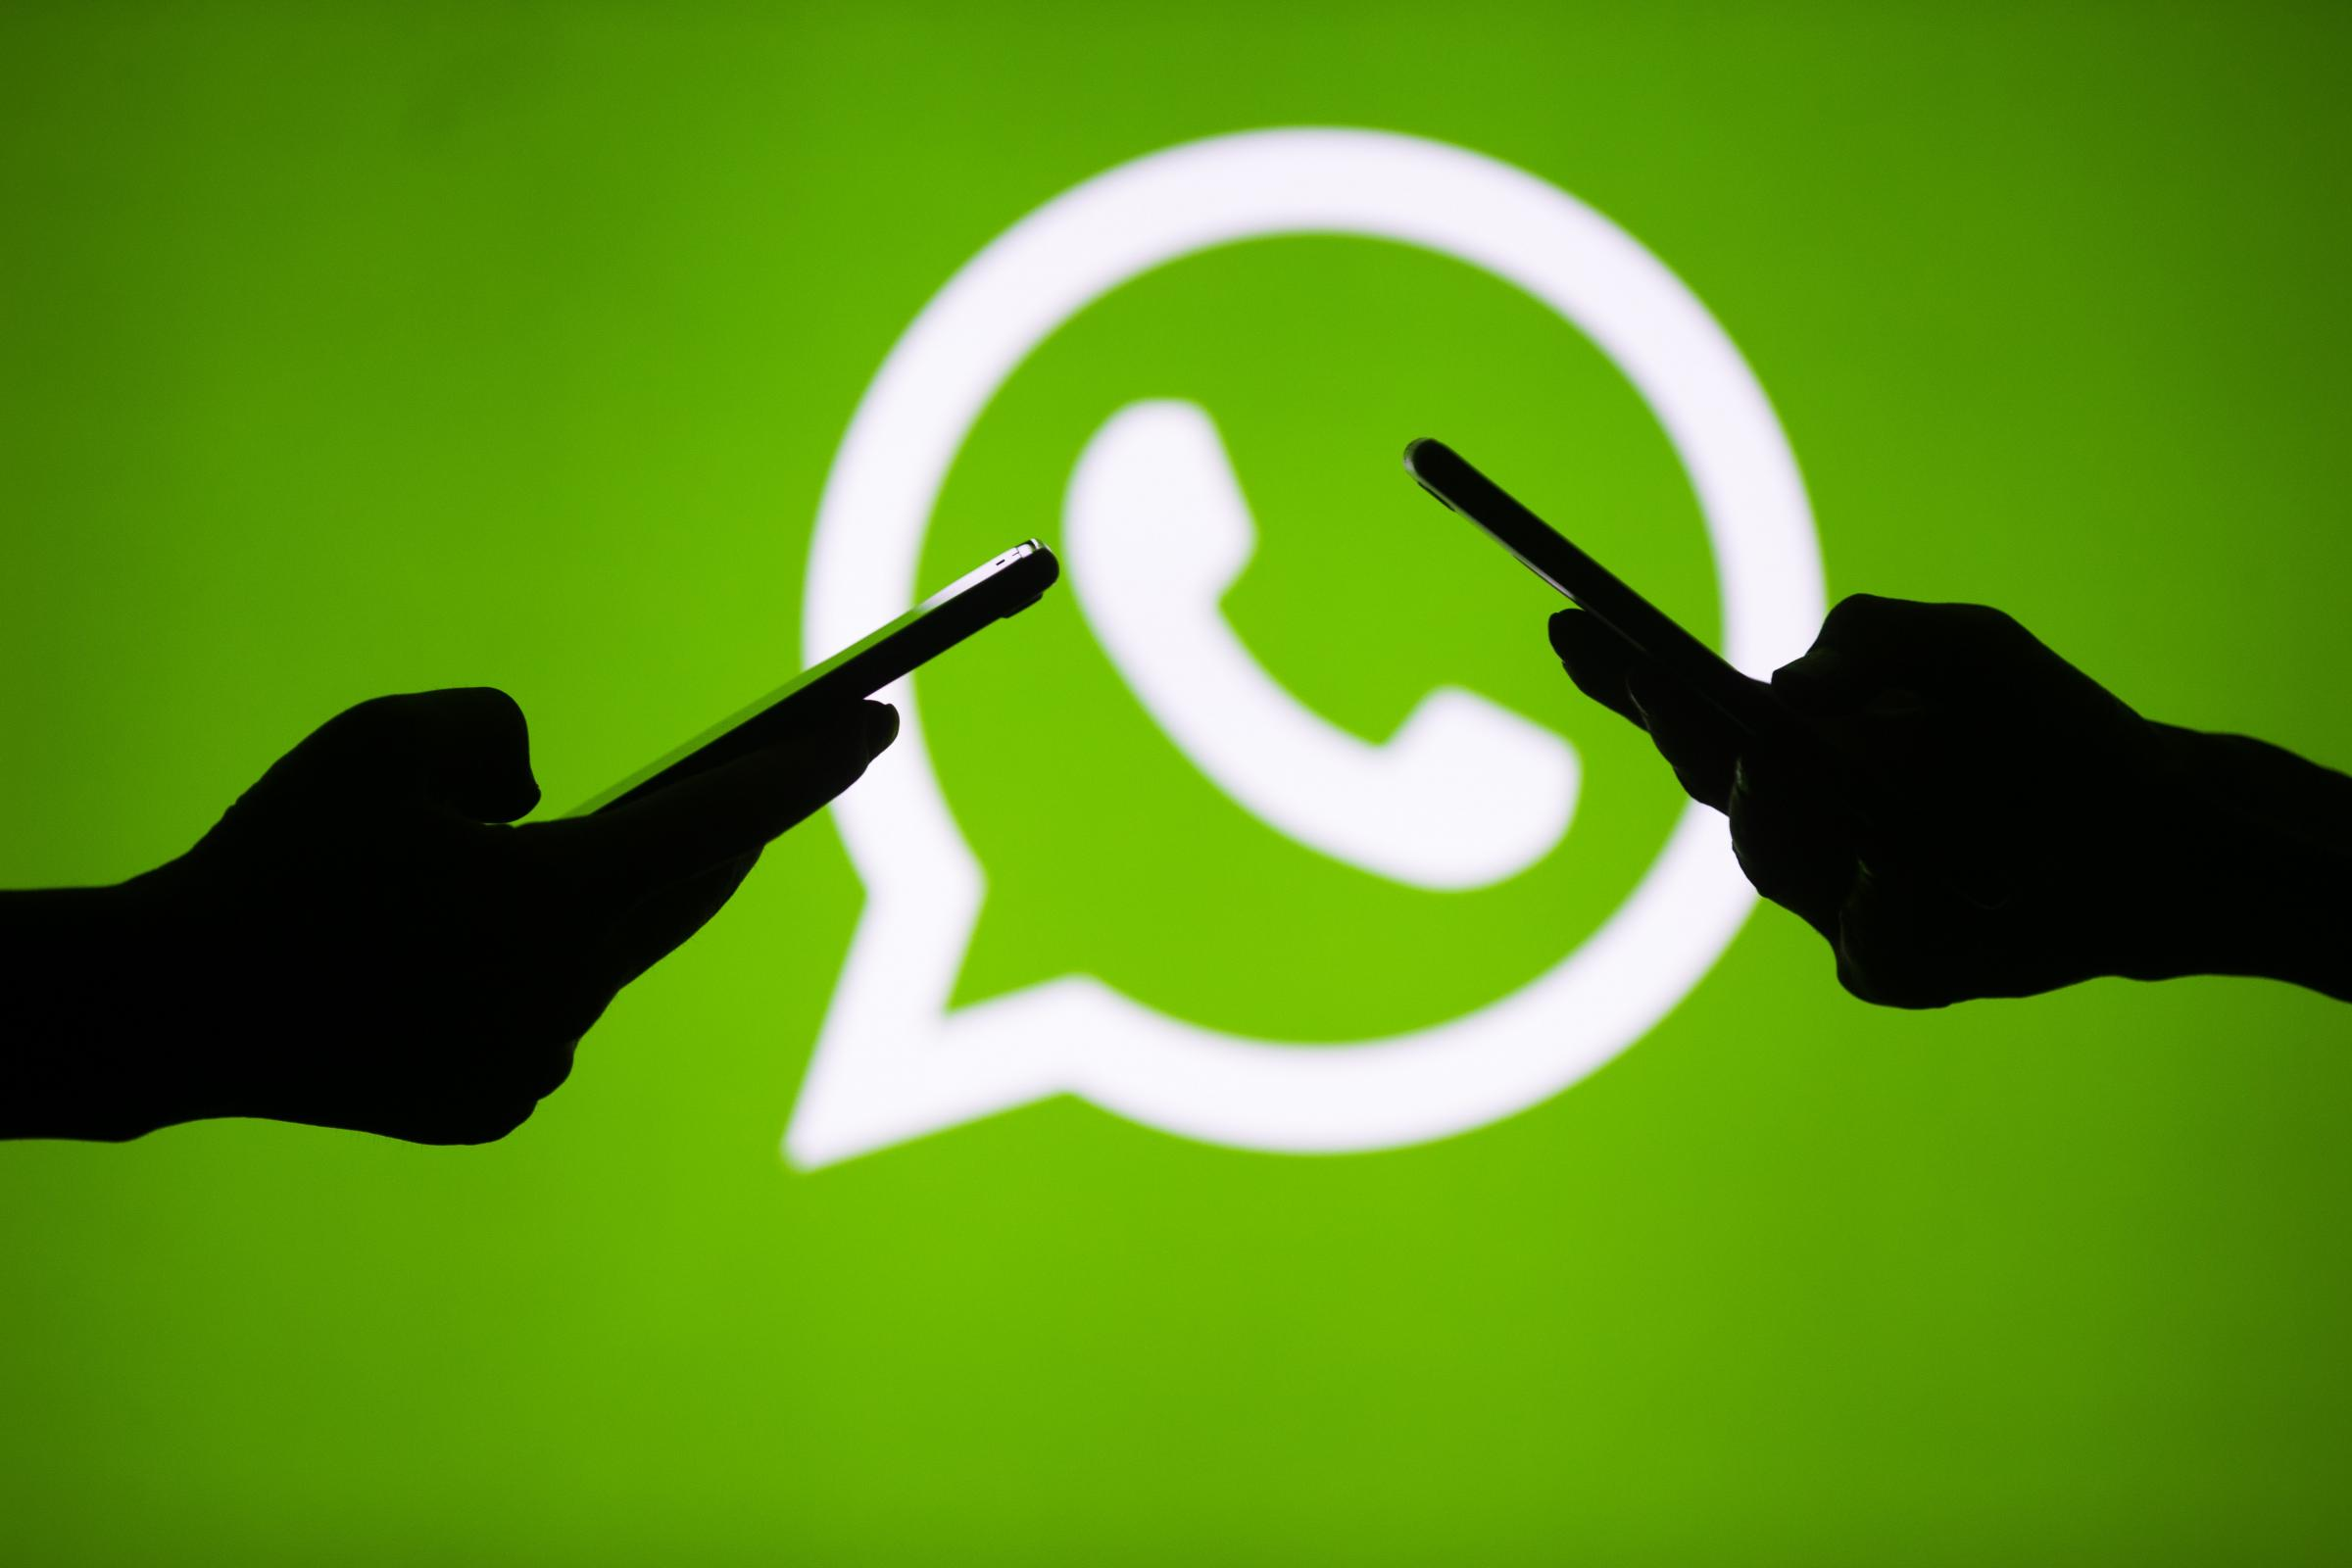 'I posted a topless picture on the wrong group' and other WhatsApp horror stories